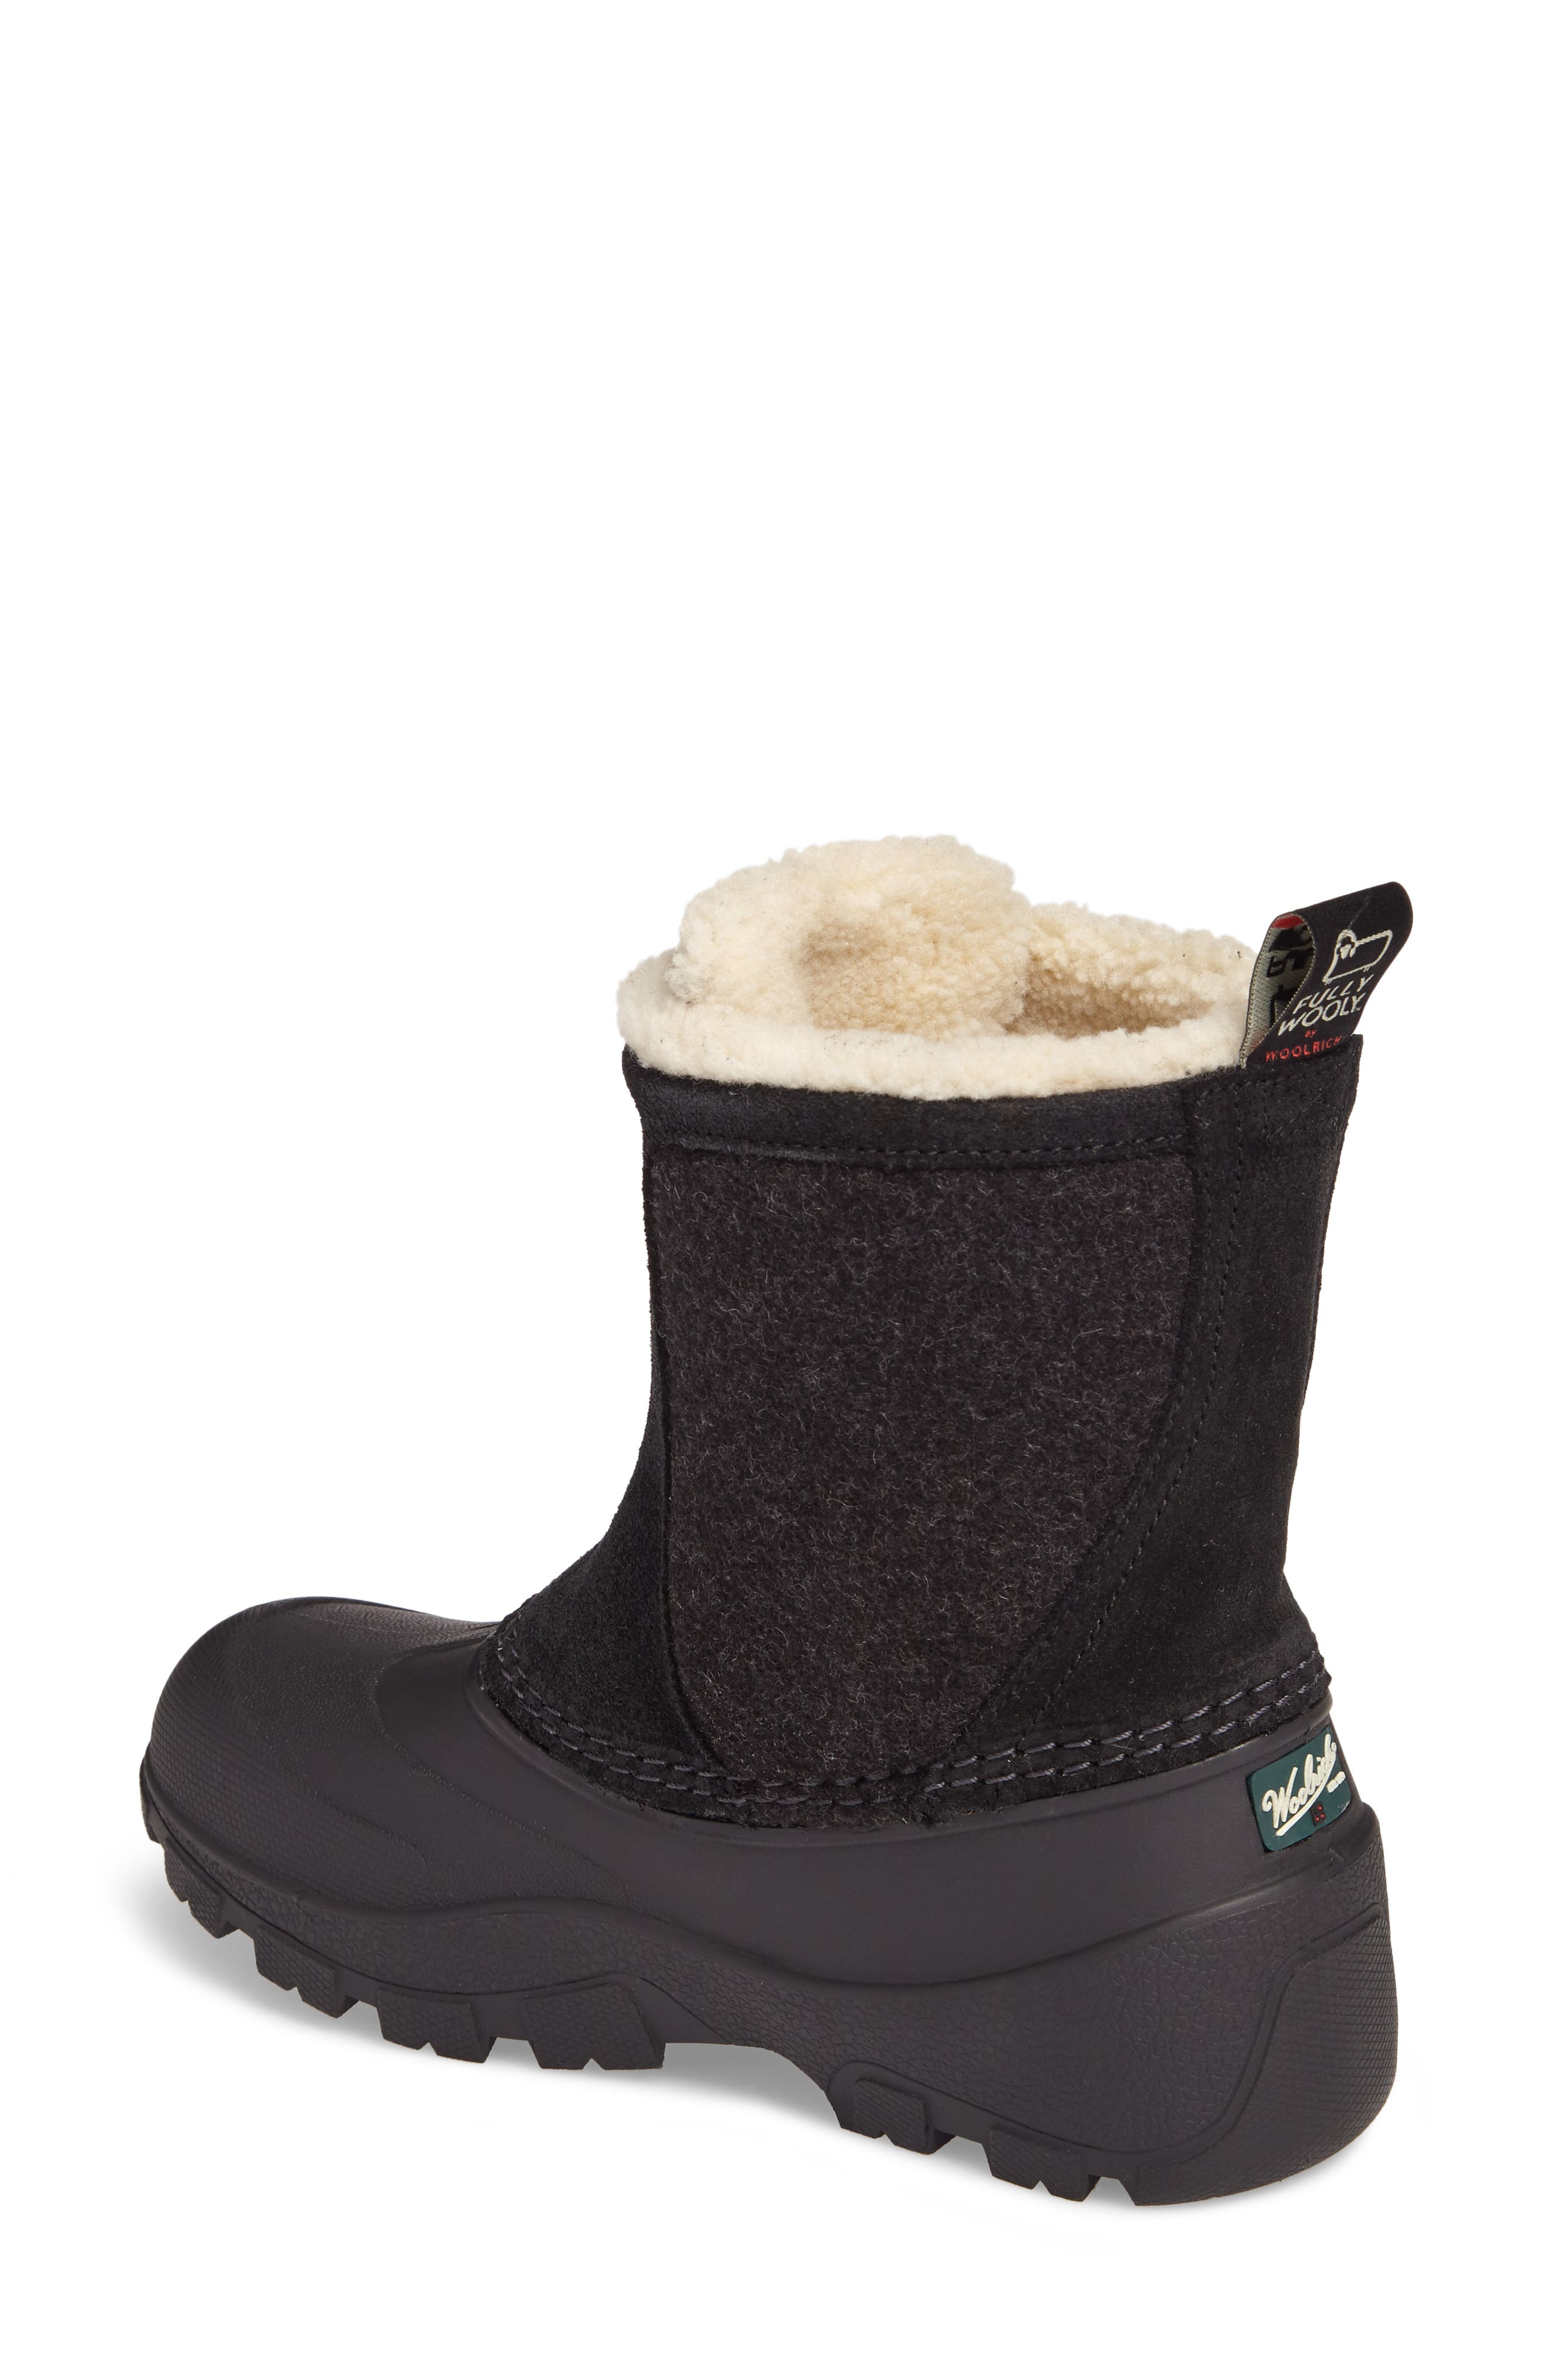 Fully Wooly Icecat Waterproof Insulated Winter Boot,                             Alternate thumbnail 2, color,                             001